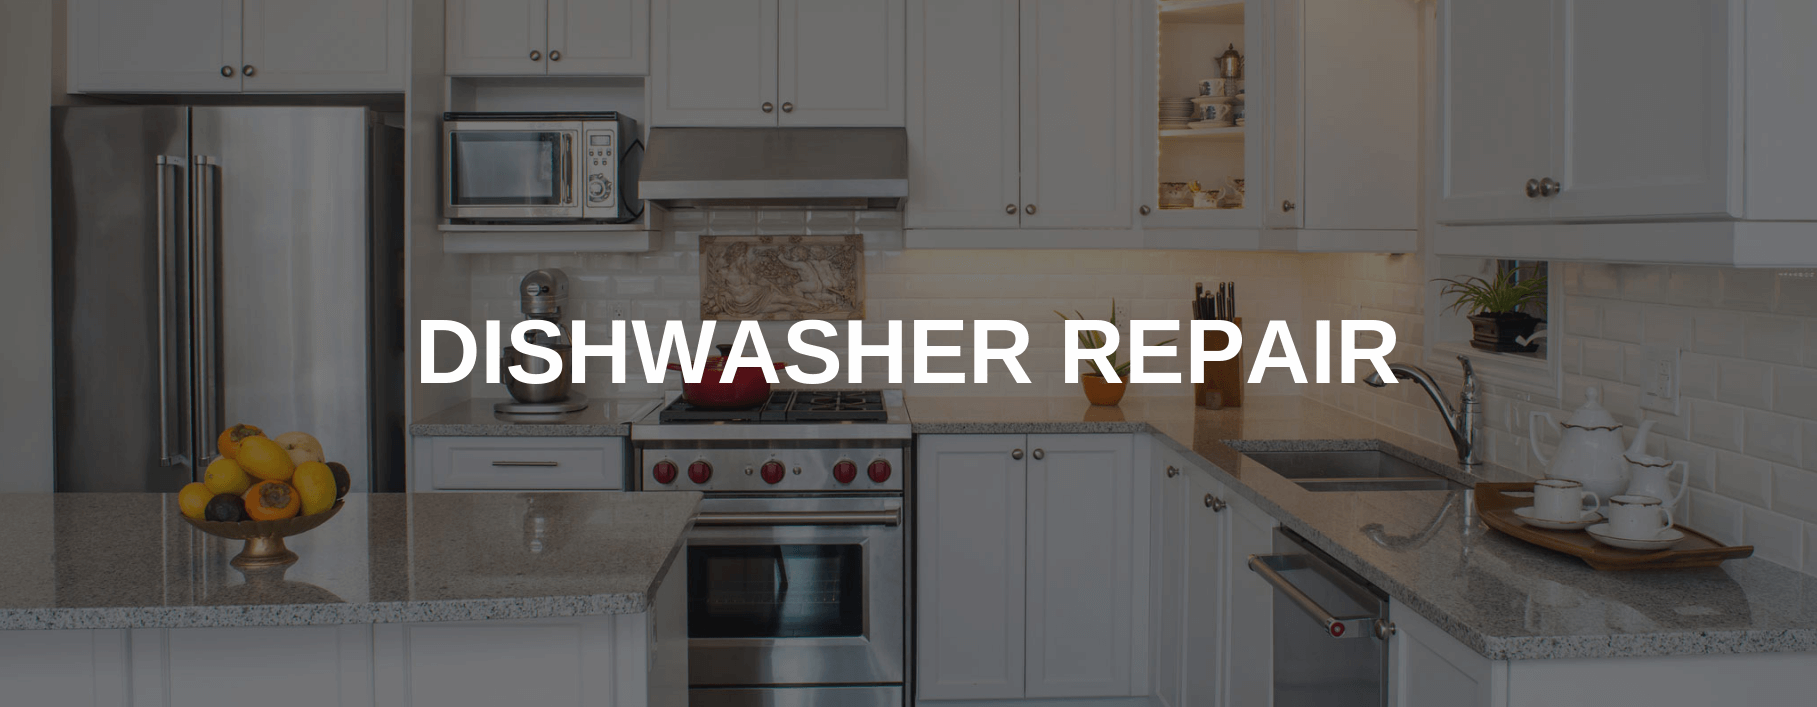 dishwasher repair grapevine